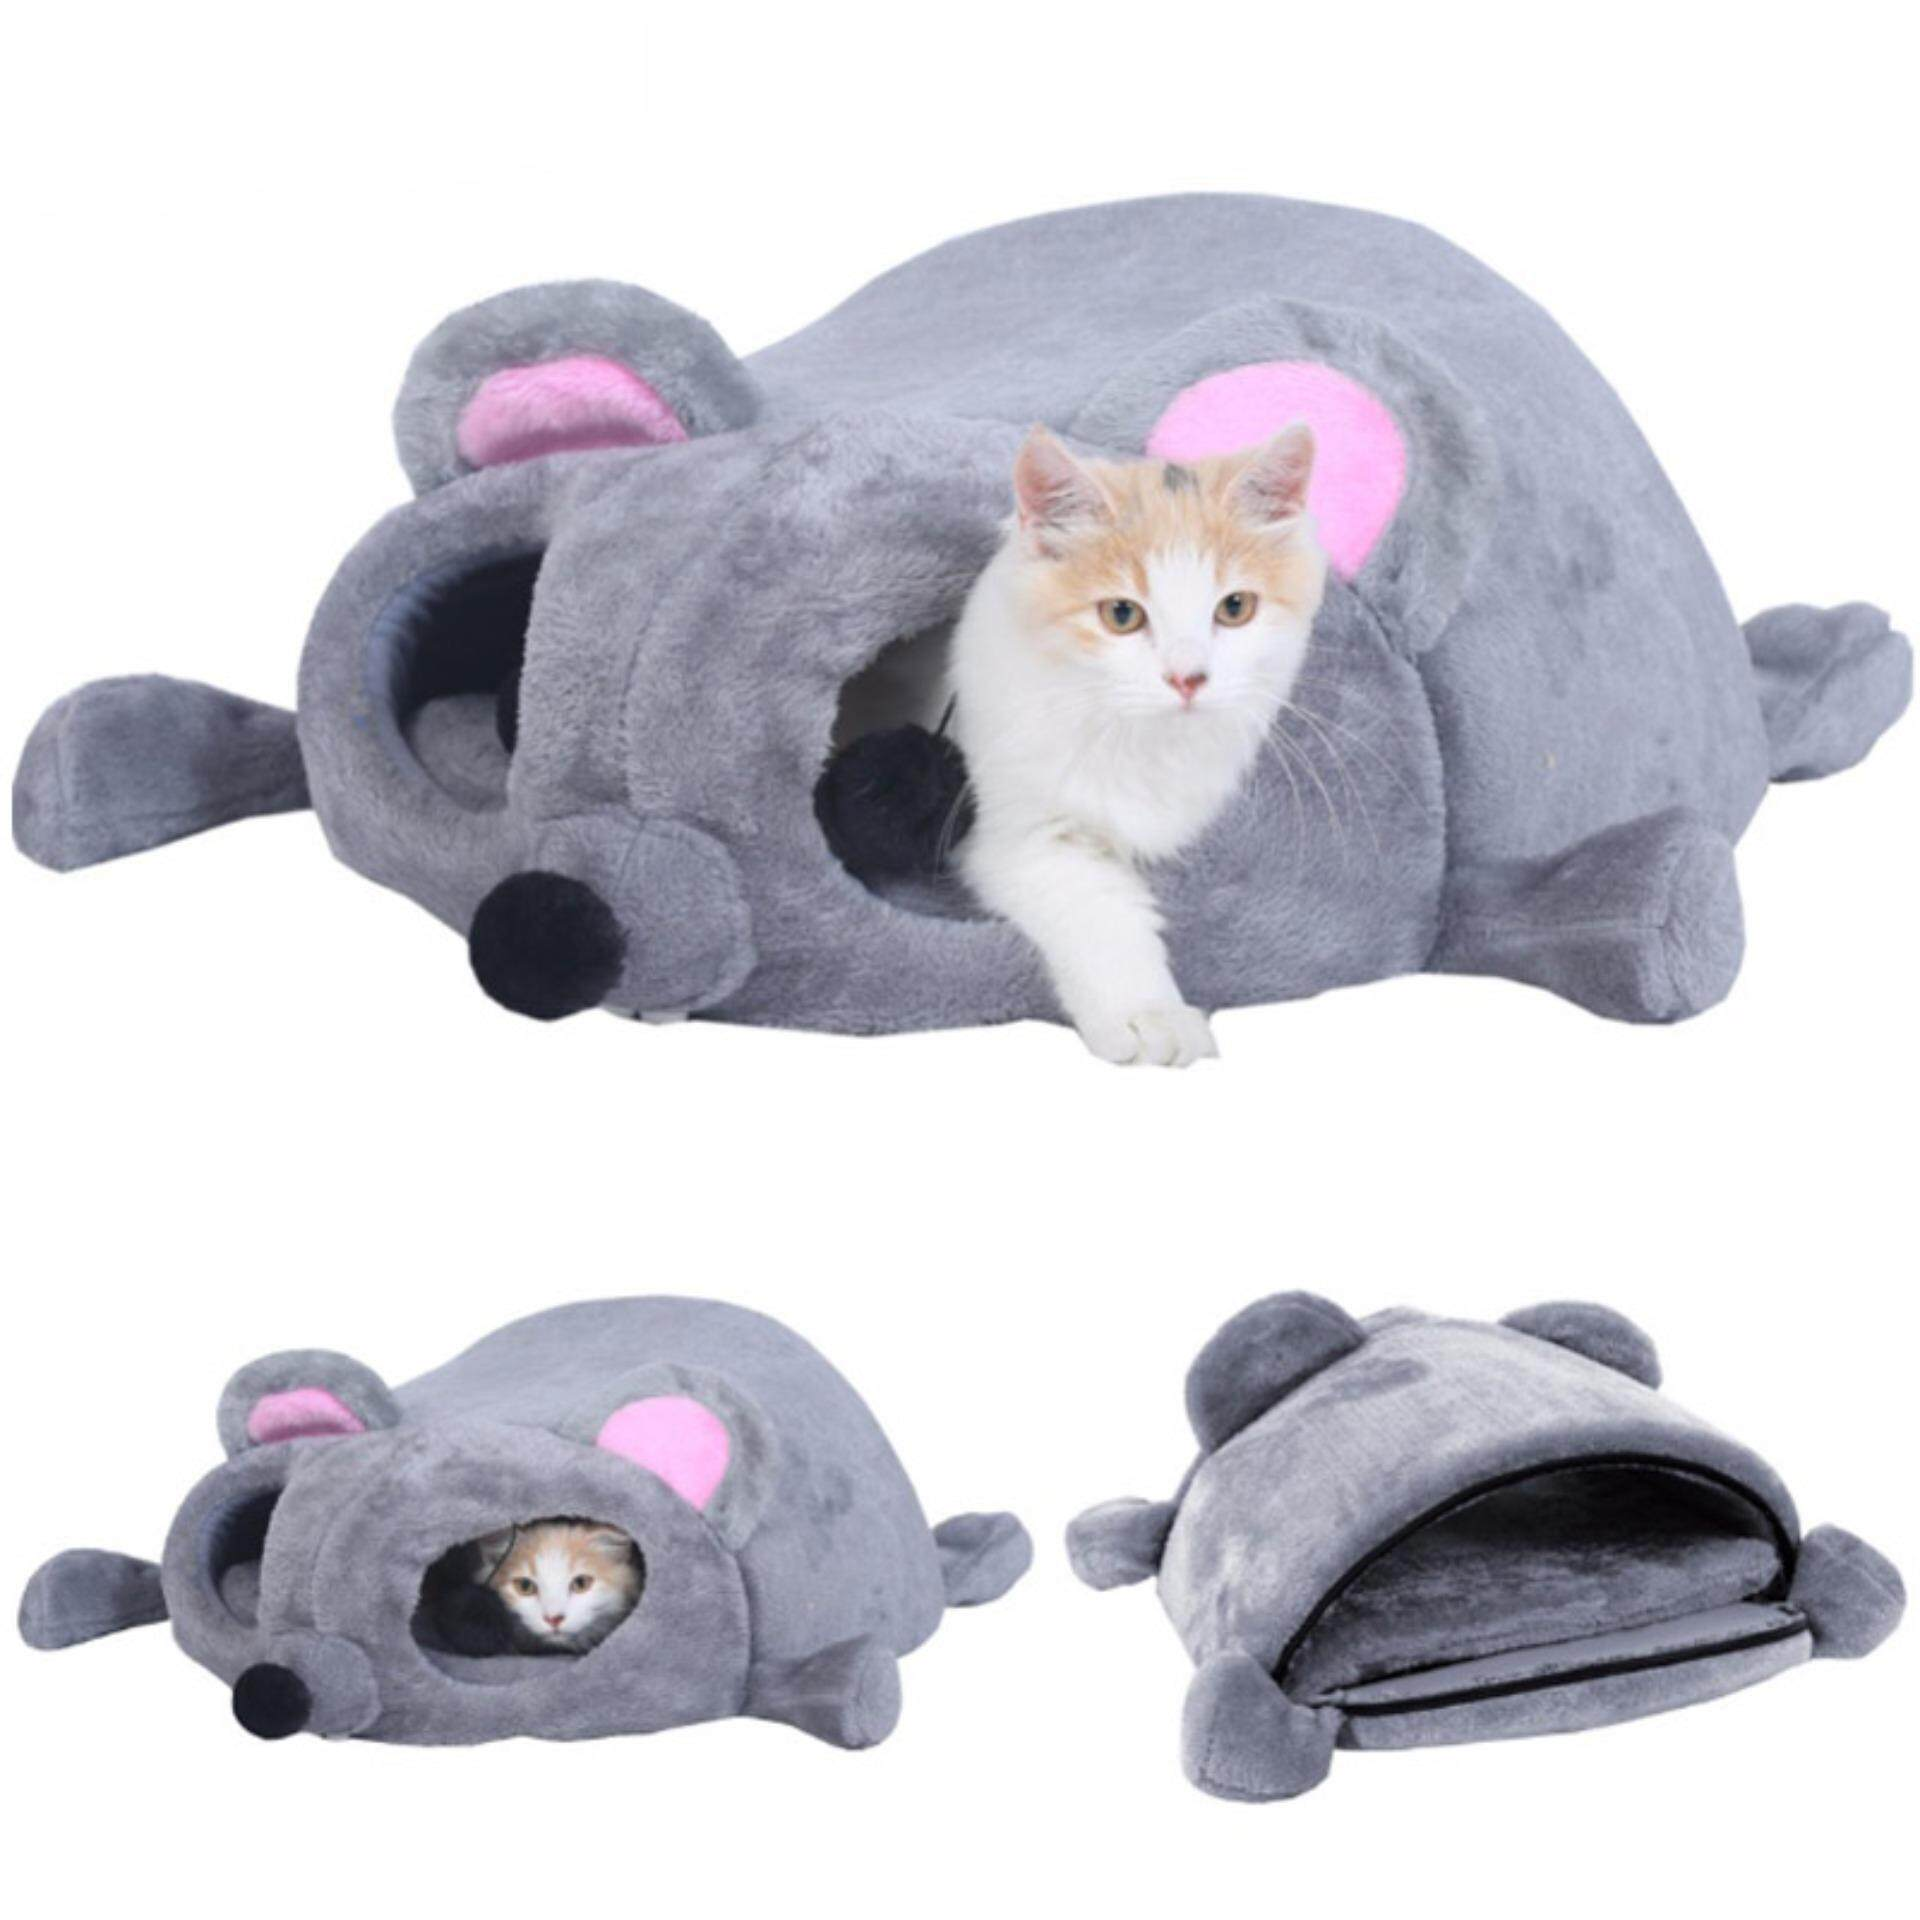 Pet Nest And House Cat Home Mouse Shaped Pet Bed For Cat - Intl By Pets Dream Official Store.